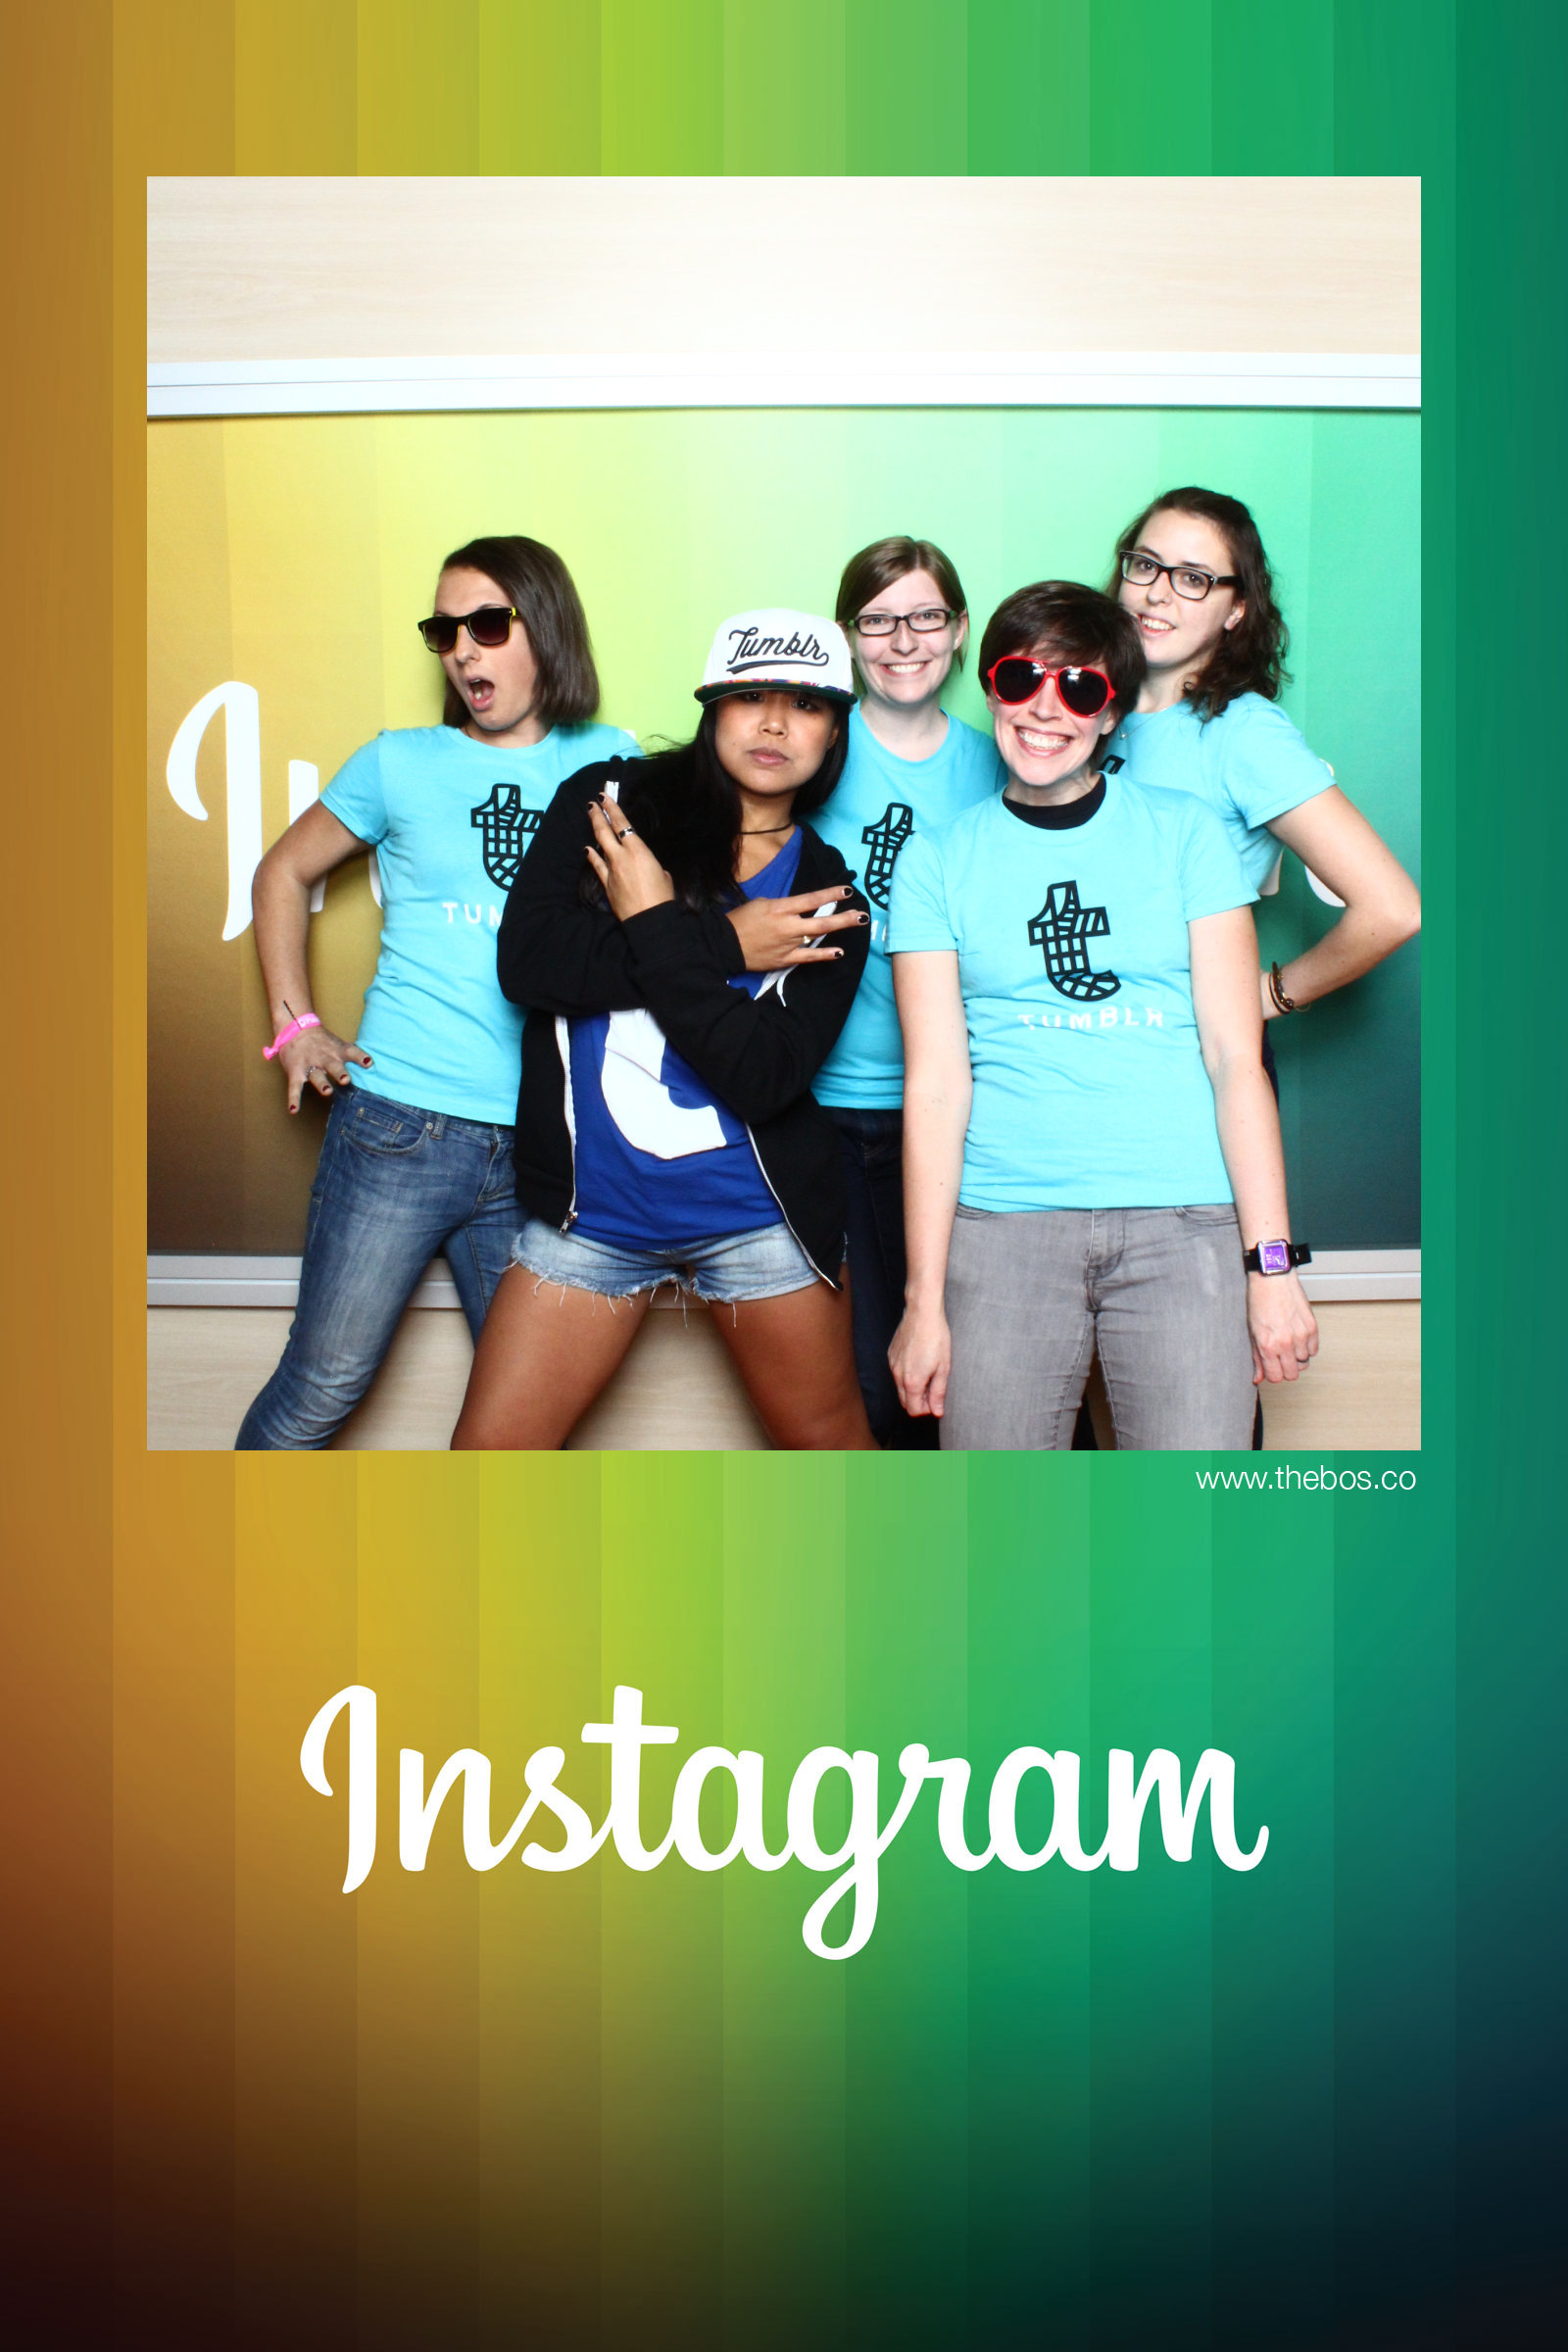 Tumblr ladies invading the Instagram booth at the Grace Hopper Celebration!